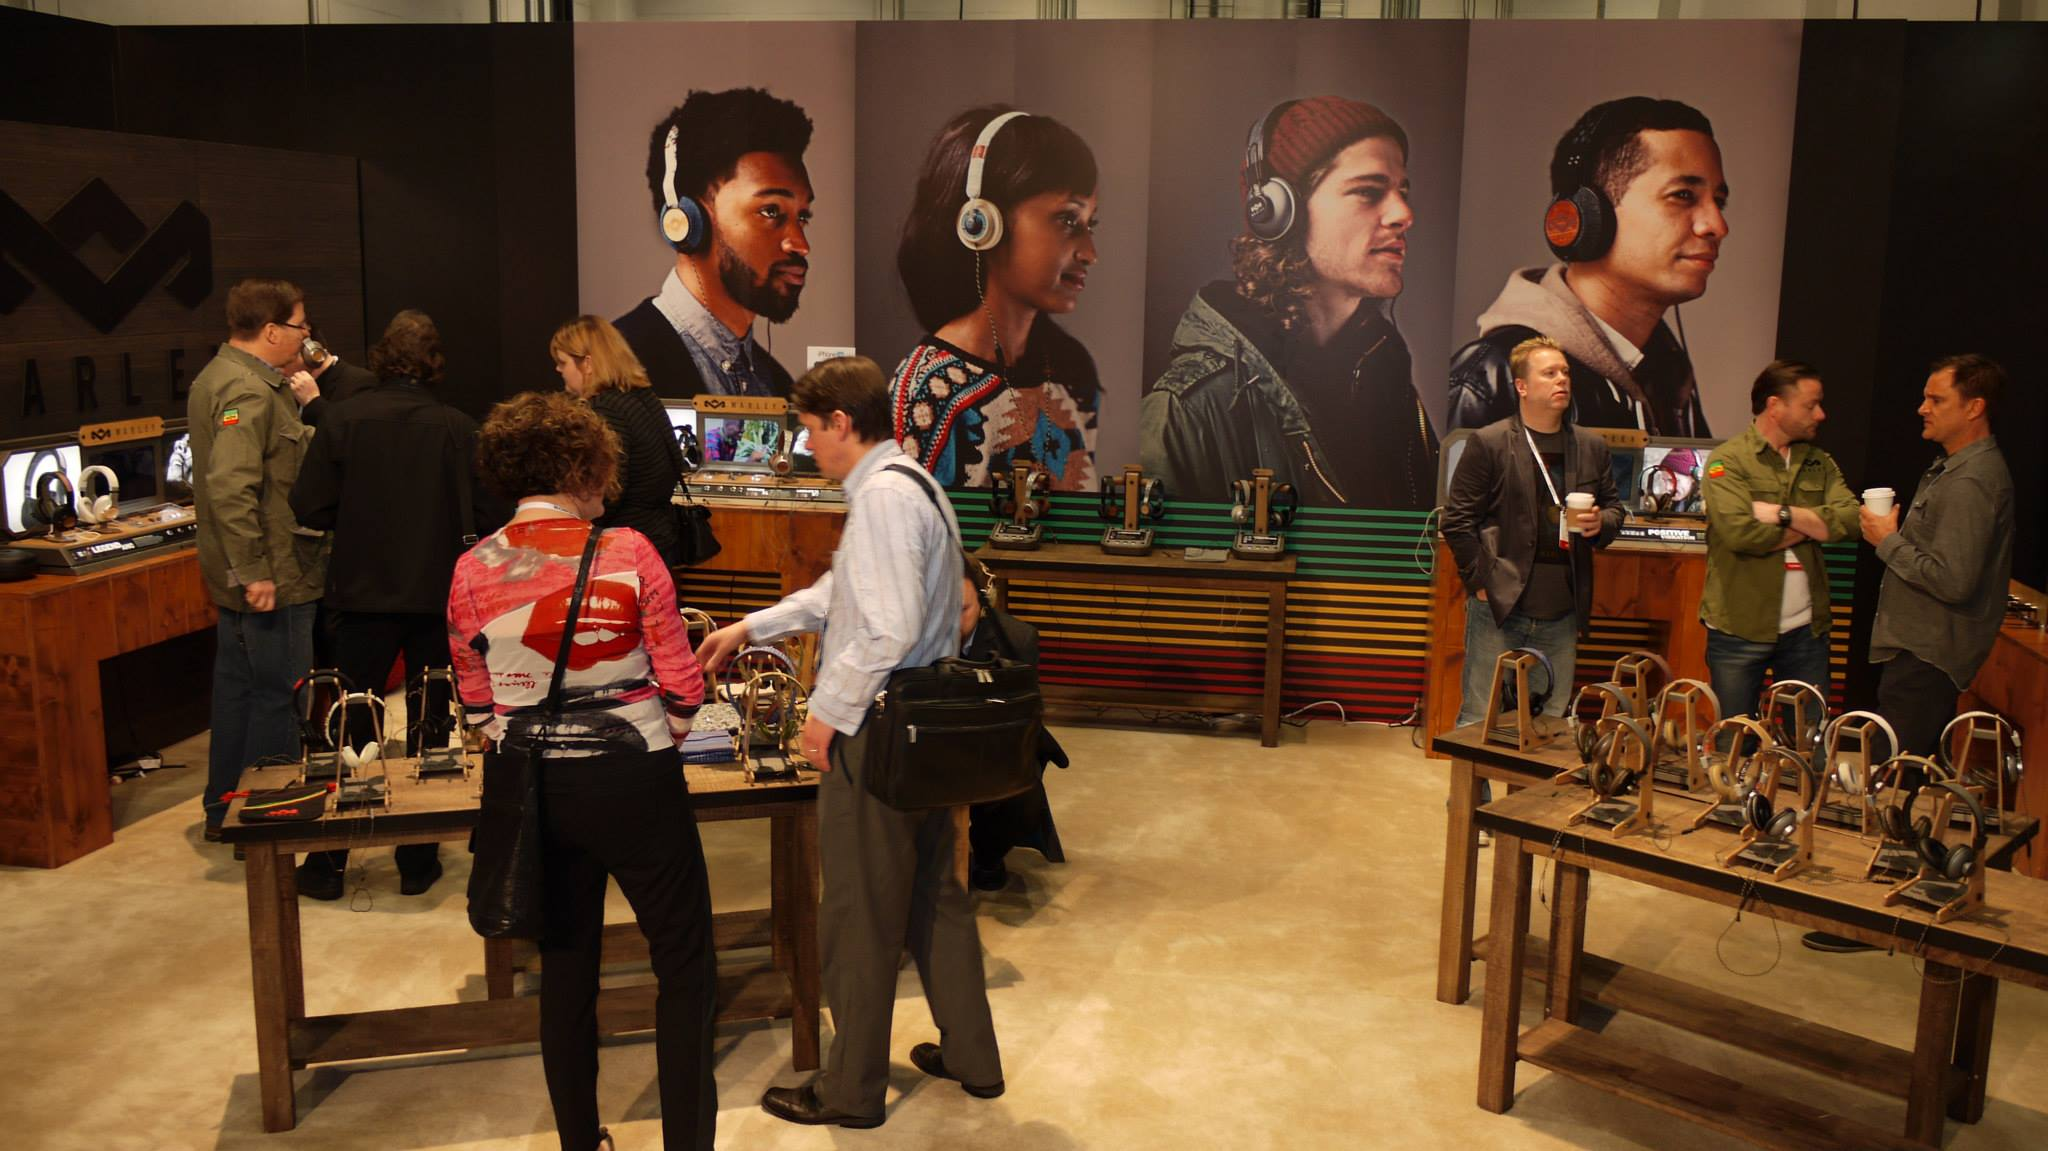 bob marley site — news — house of marley at ces 2014 (recap)